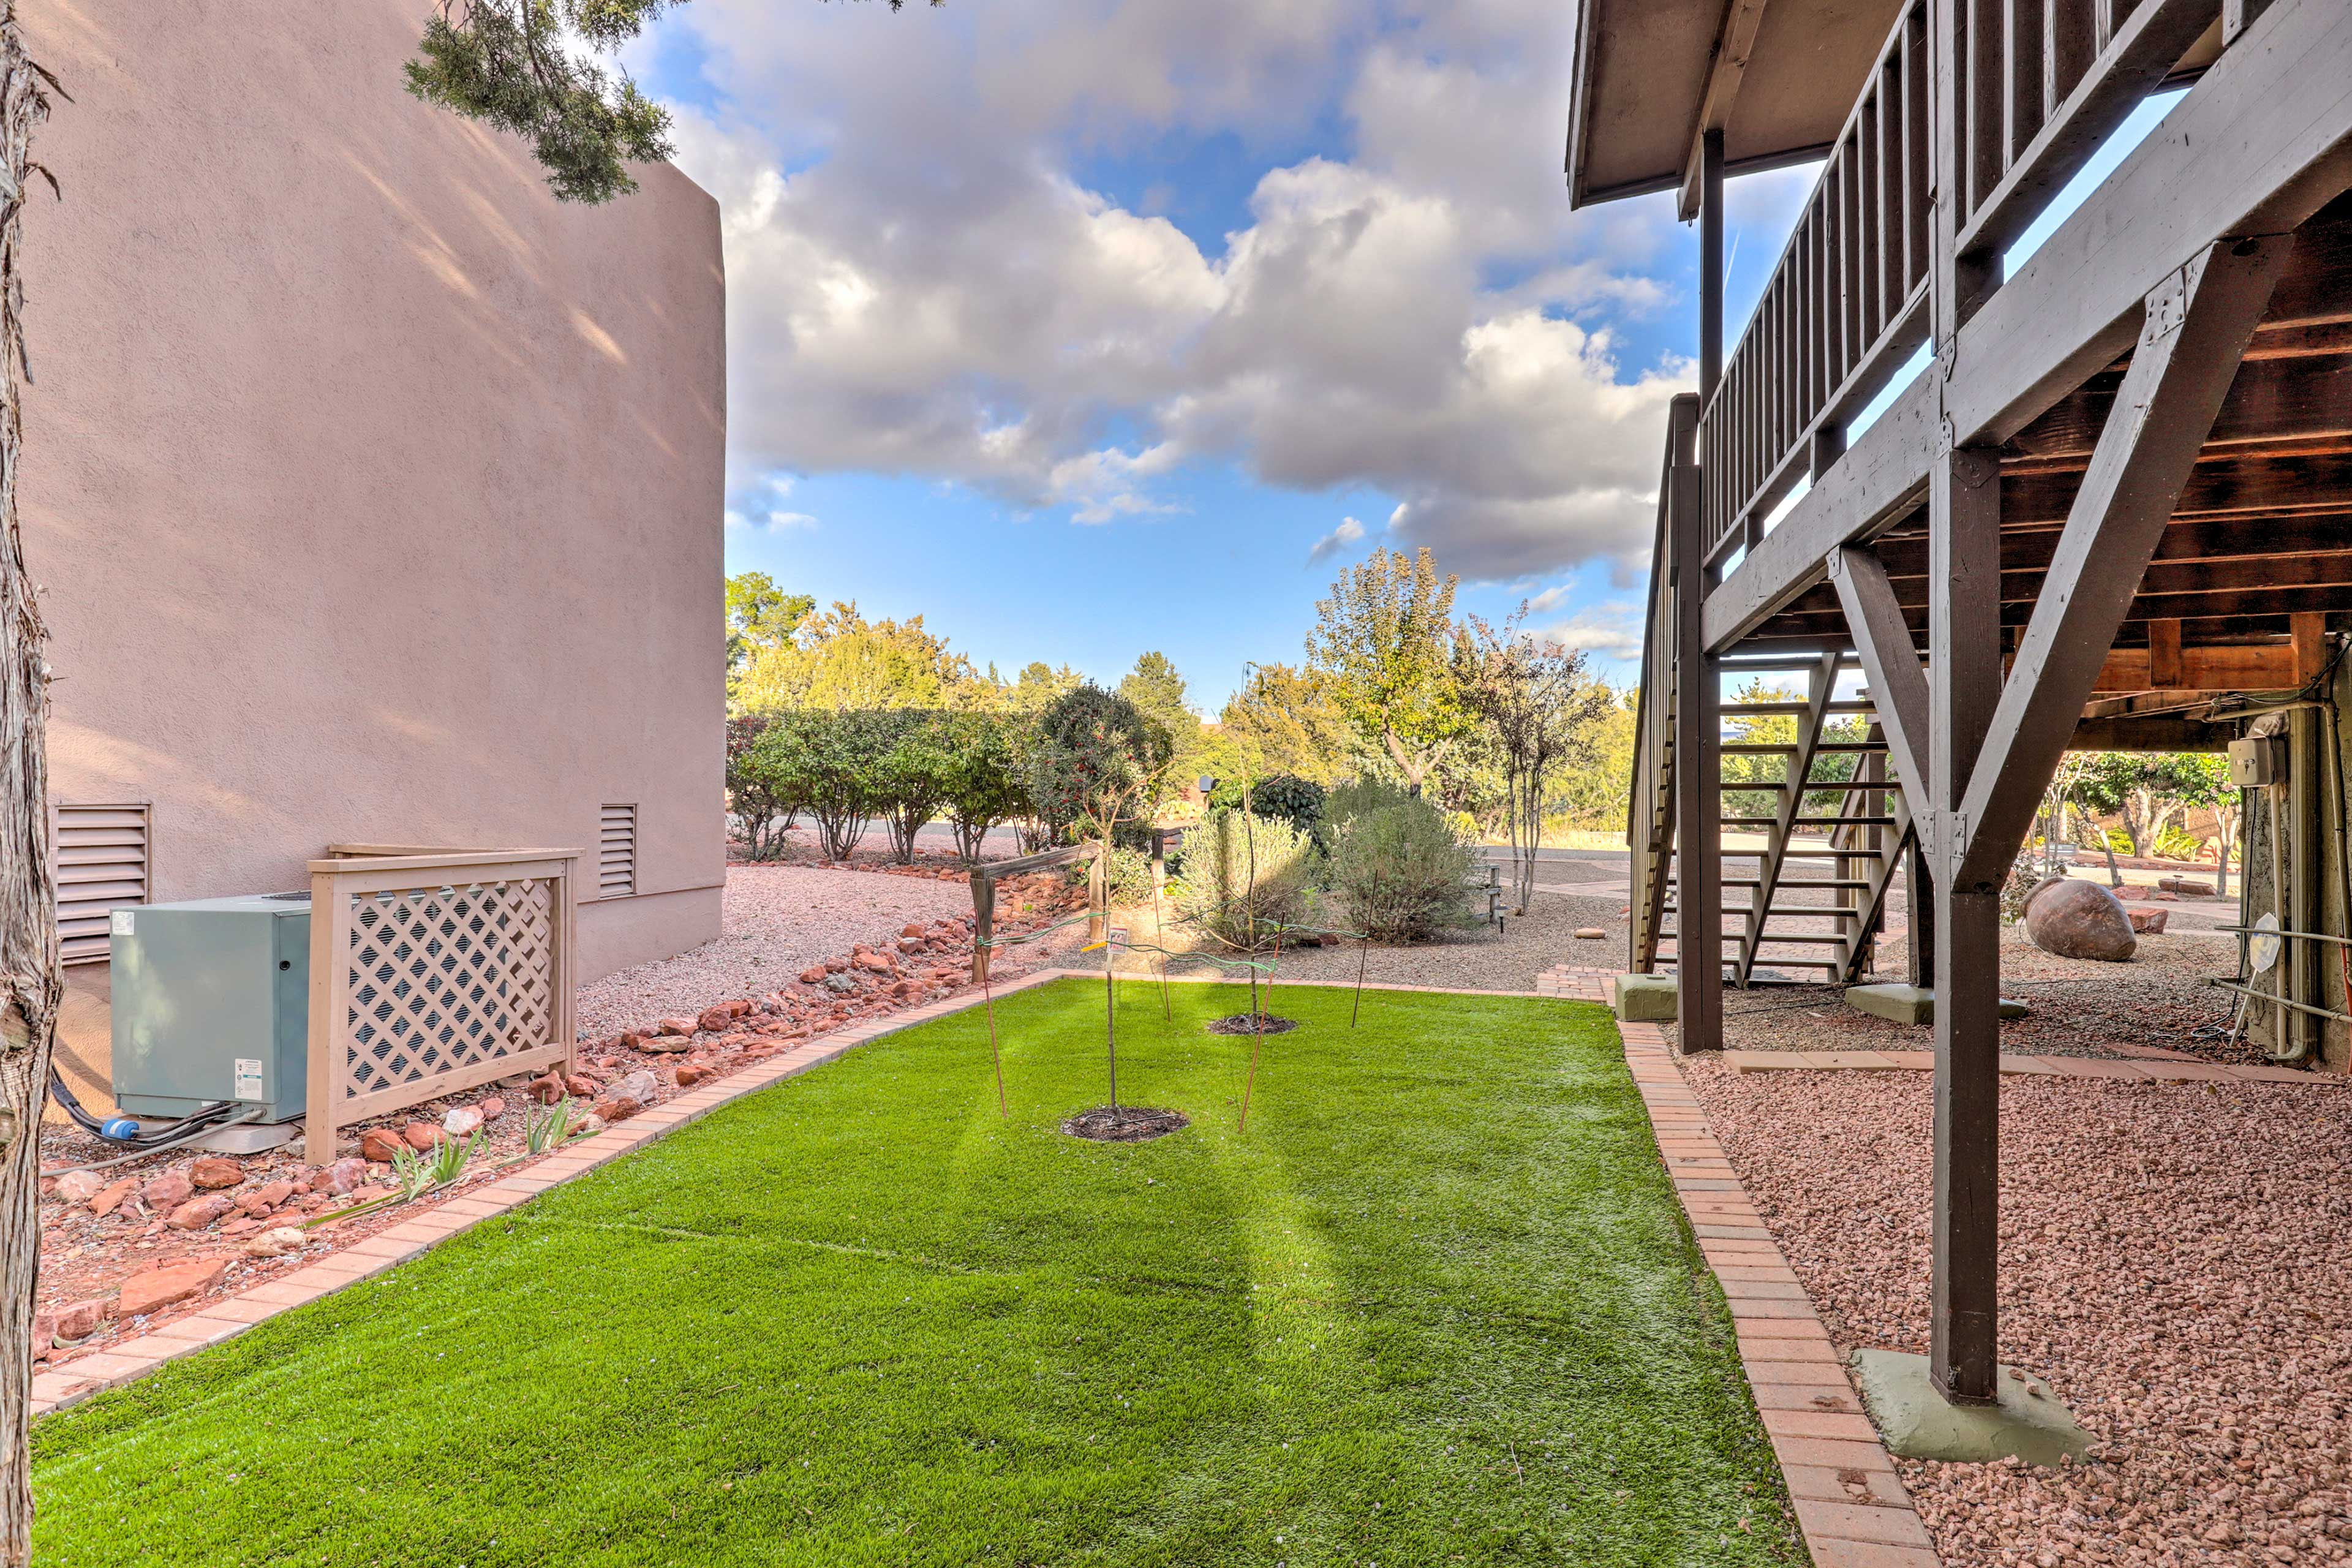 Additional yard space means you don't have to stop playing when you come home.